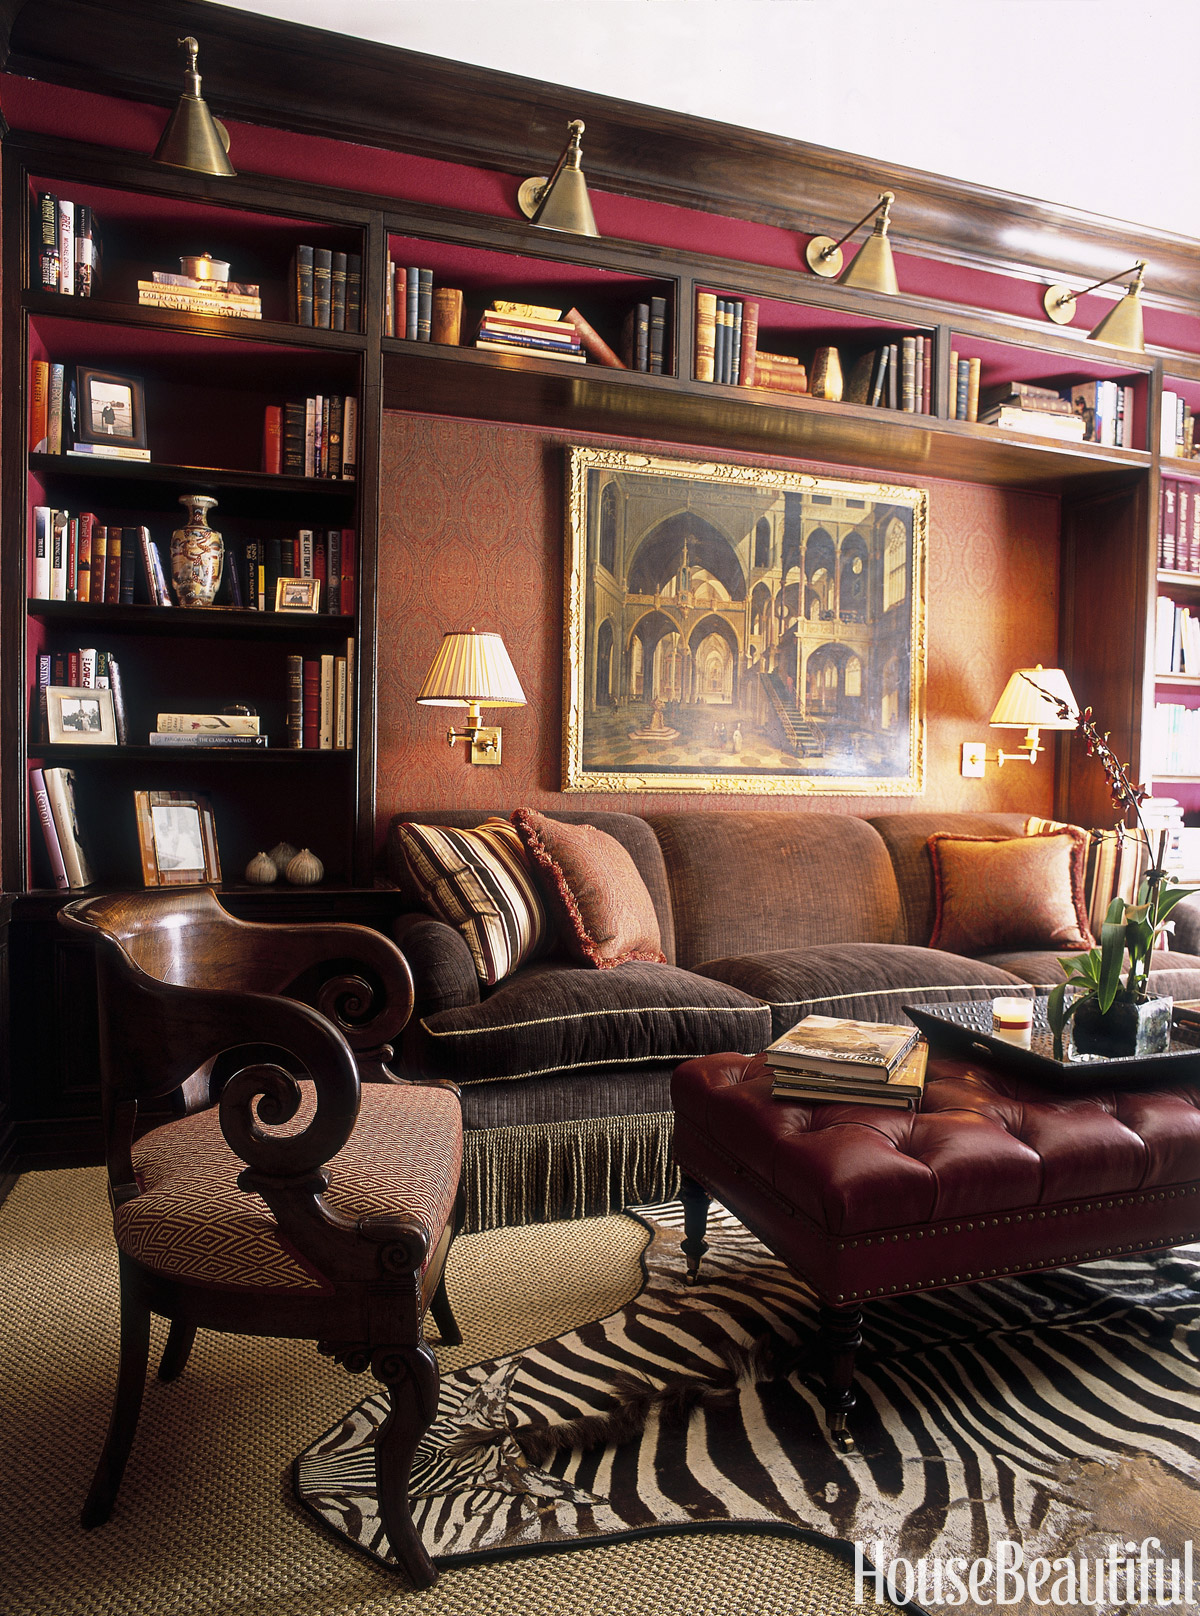 """Red libraries are best!"" says designer Alessandra Branca. Walls are upholstered in wool paisley. The sofa and ottoman are Branca designs."